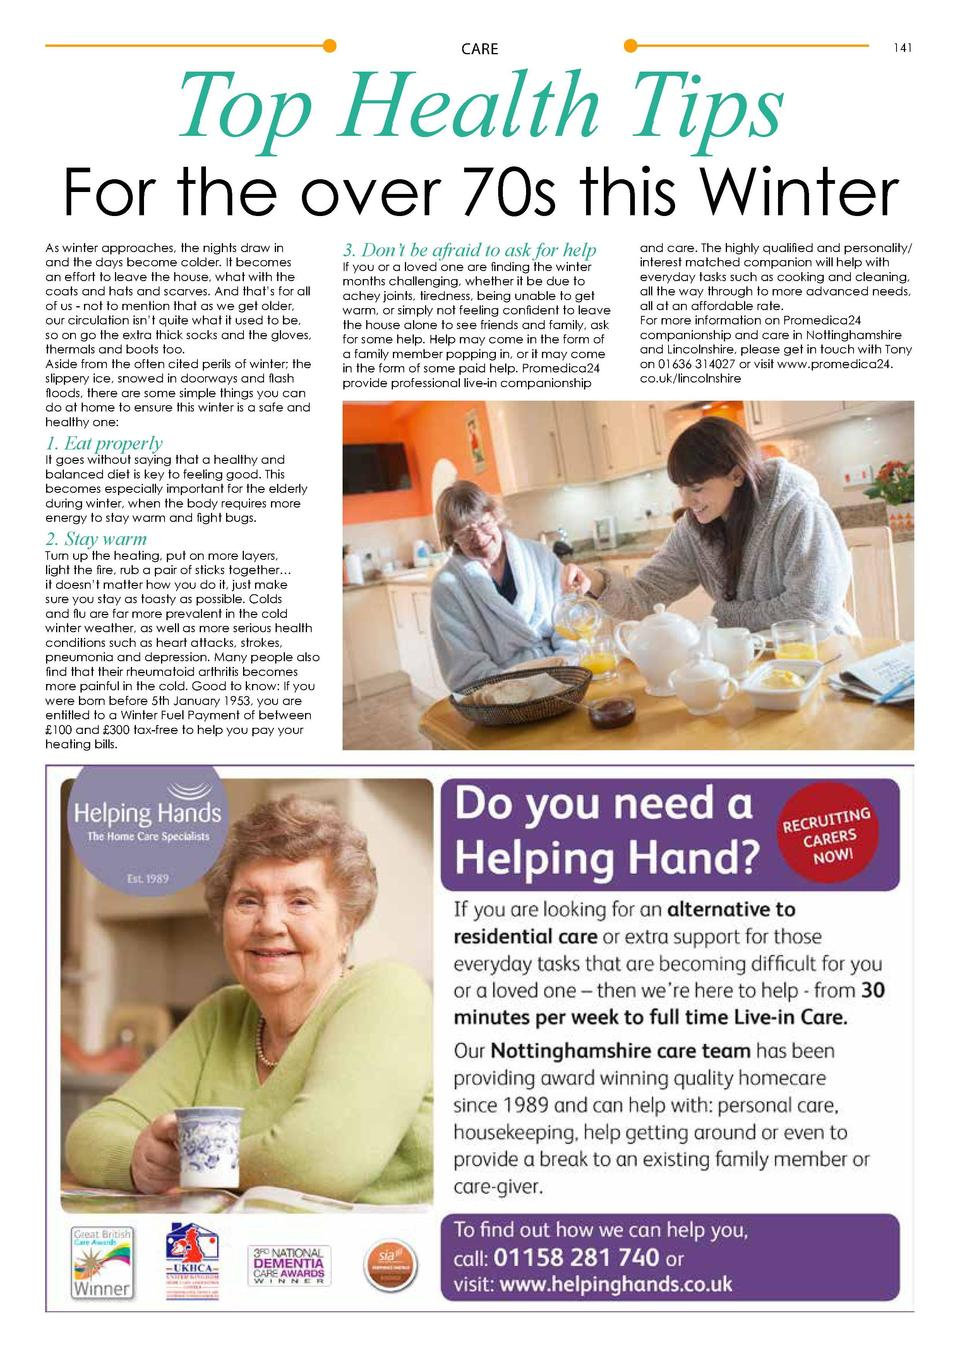 Top Health Tips CARE  141  For the over 70s this Winter As winter approaches, the nights draw in and the days become colde...